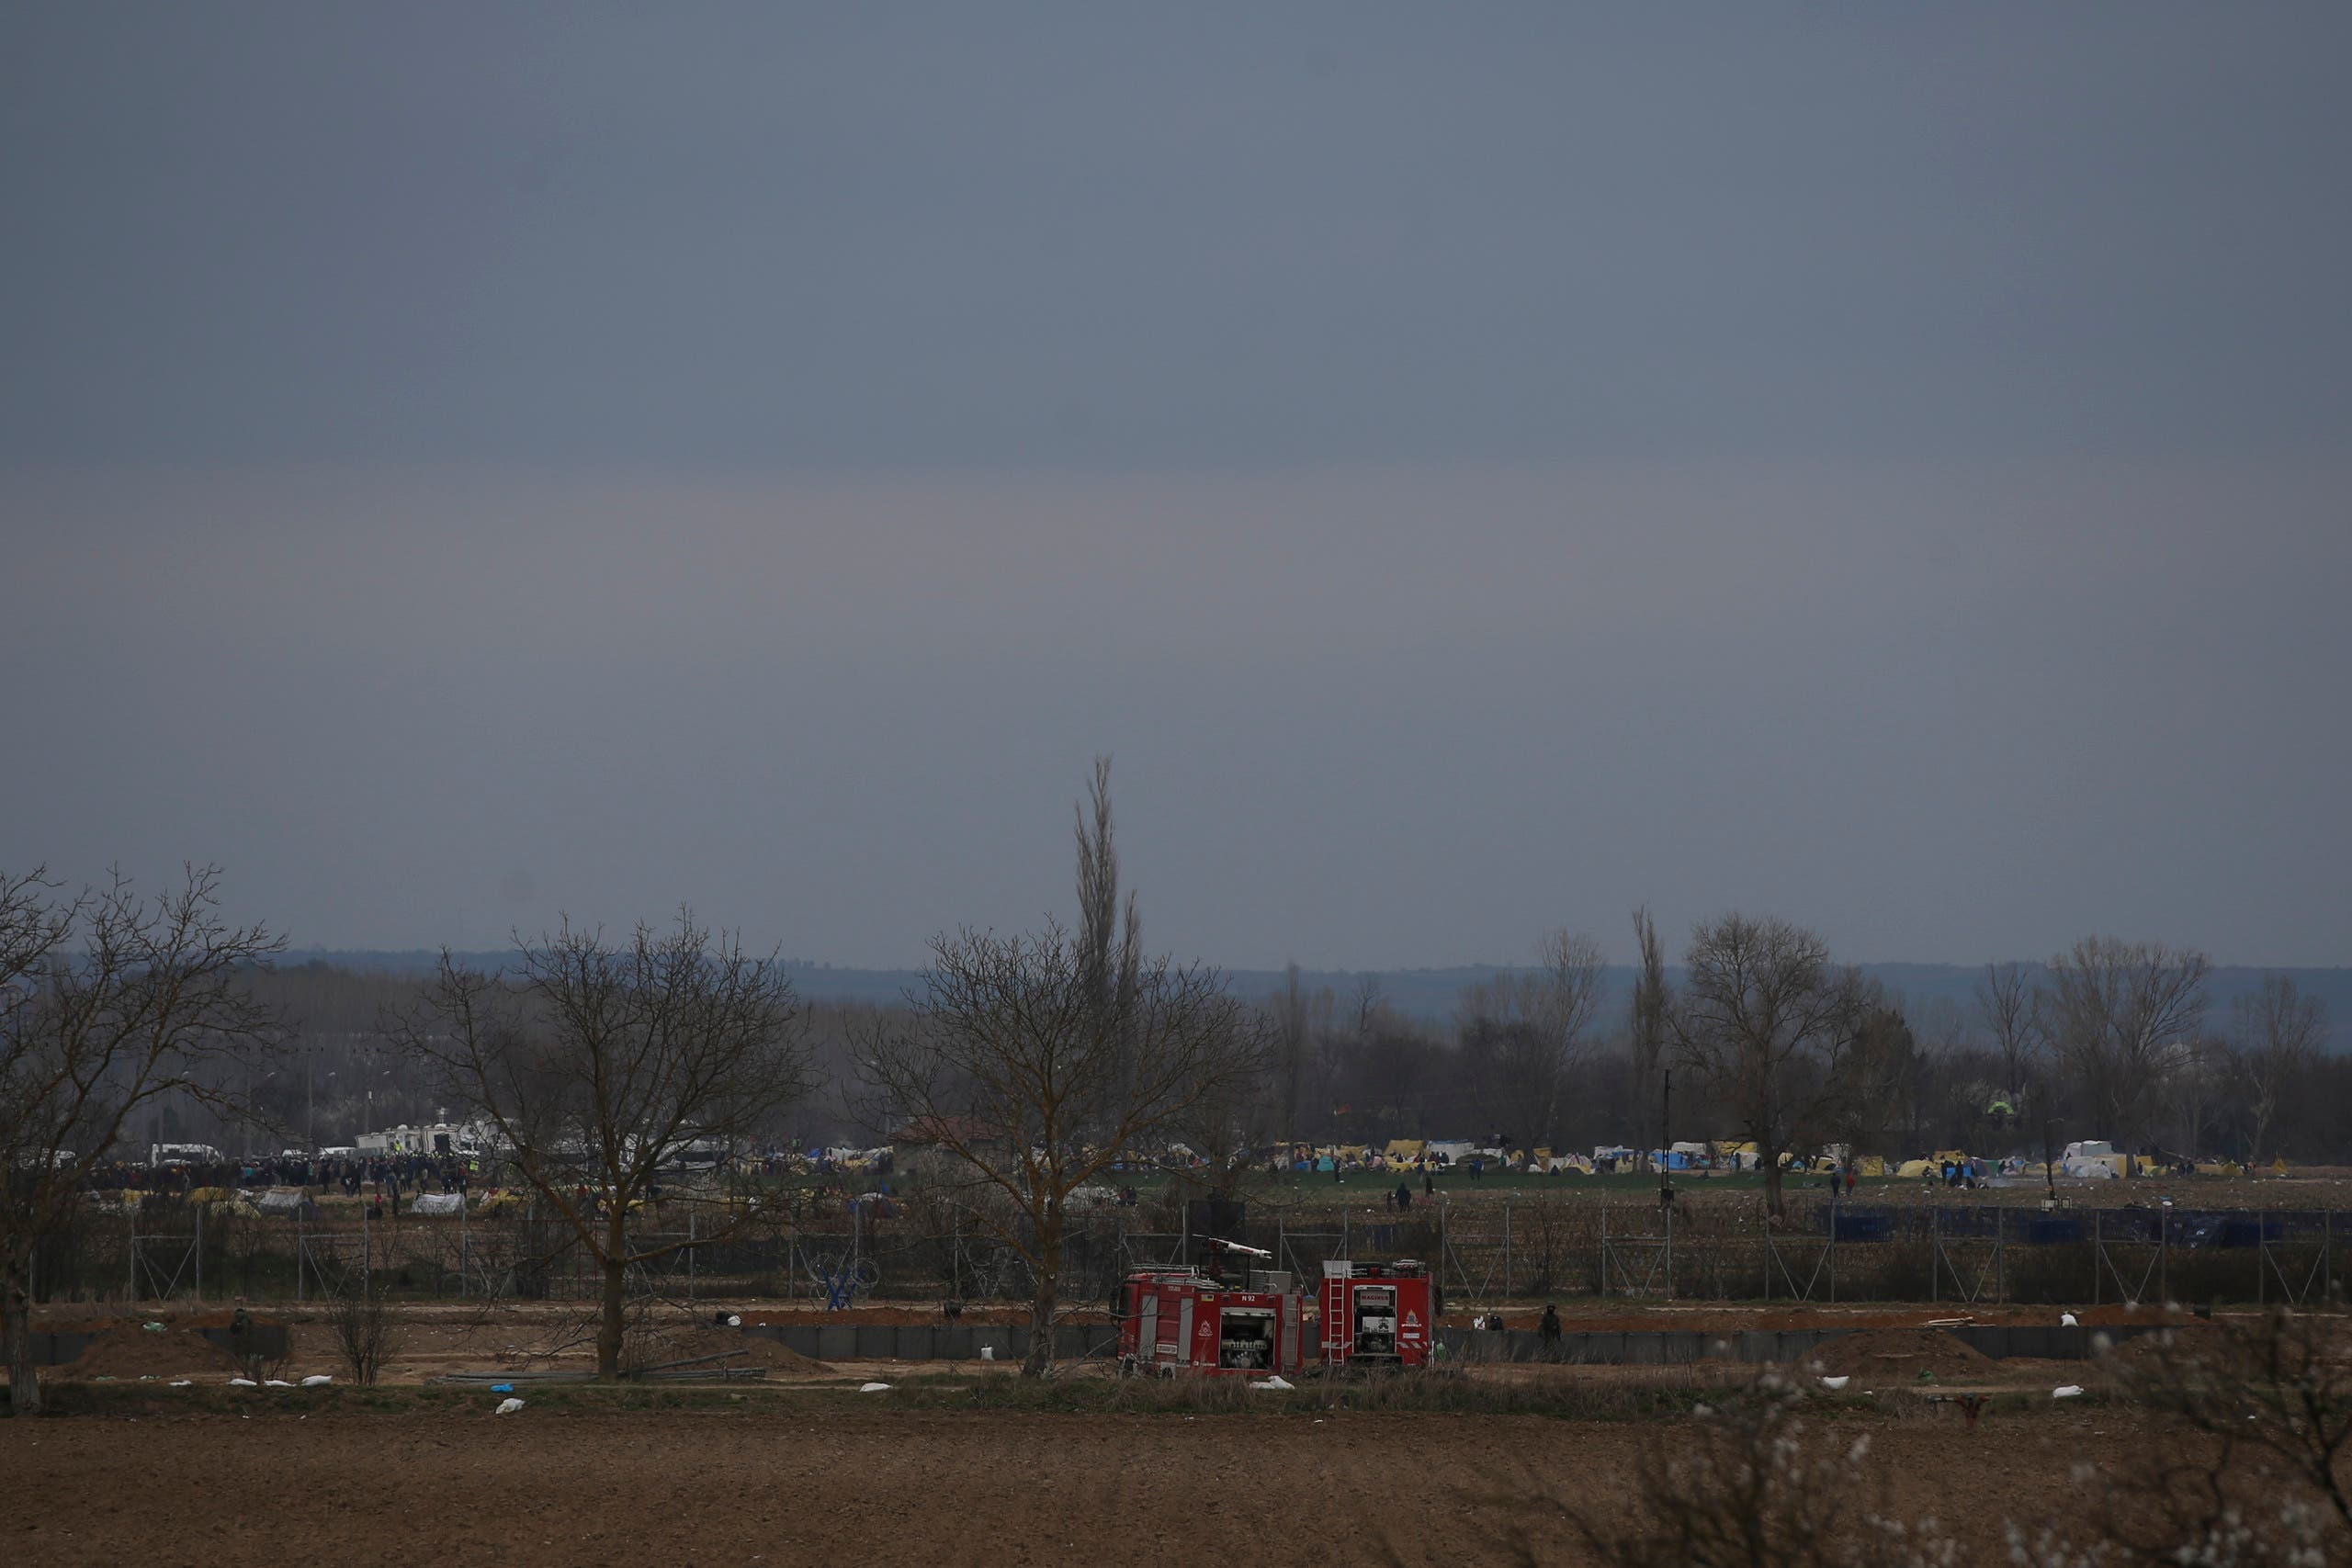 Migrants gather in tends at the Pazarkule crossing point in the Turkish side of the Greek-Turkish border near the village of Kastanies, Evros region, Greece, on Tuesday, March 10, 2020. (AP)